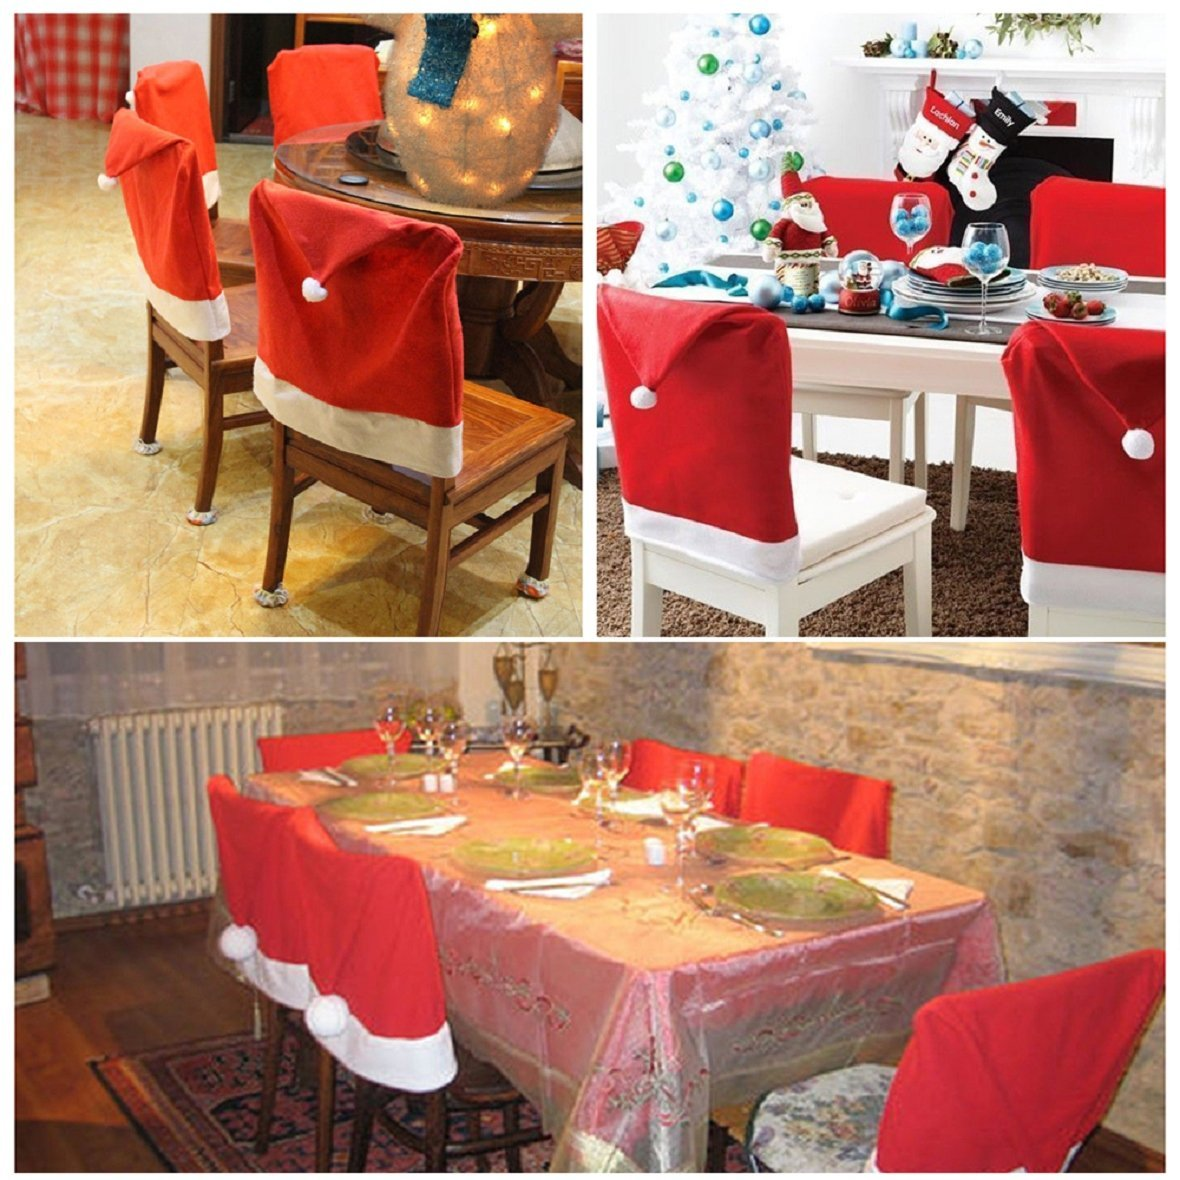 72137cf6dbce5 Buy Tonsee 6pcs Santa Red Hat Chair Covers Christmas Decorations Dinner  Chair Xmas Cap Sets in Cheap Price on m.alibaba.com